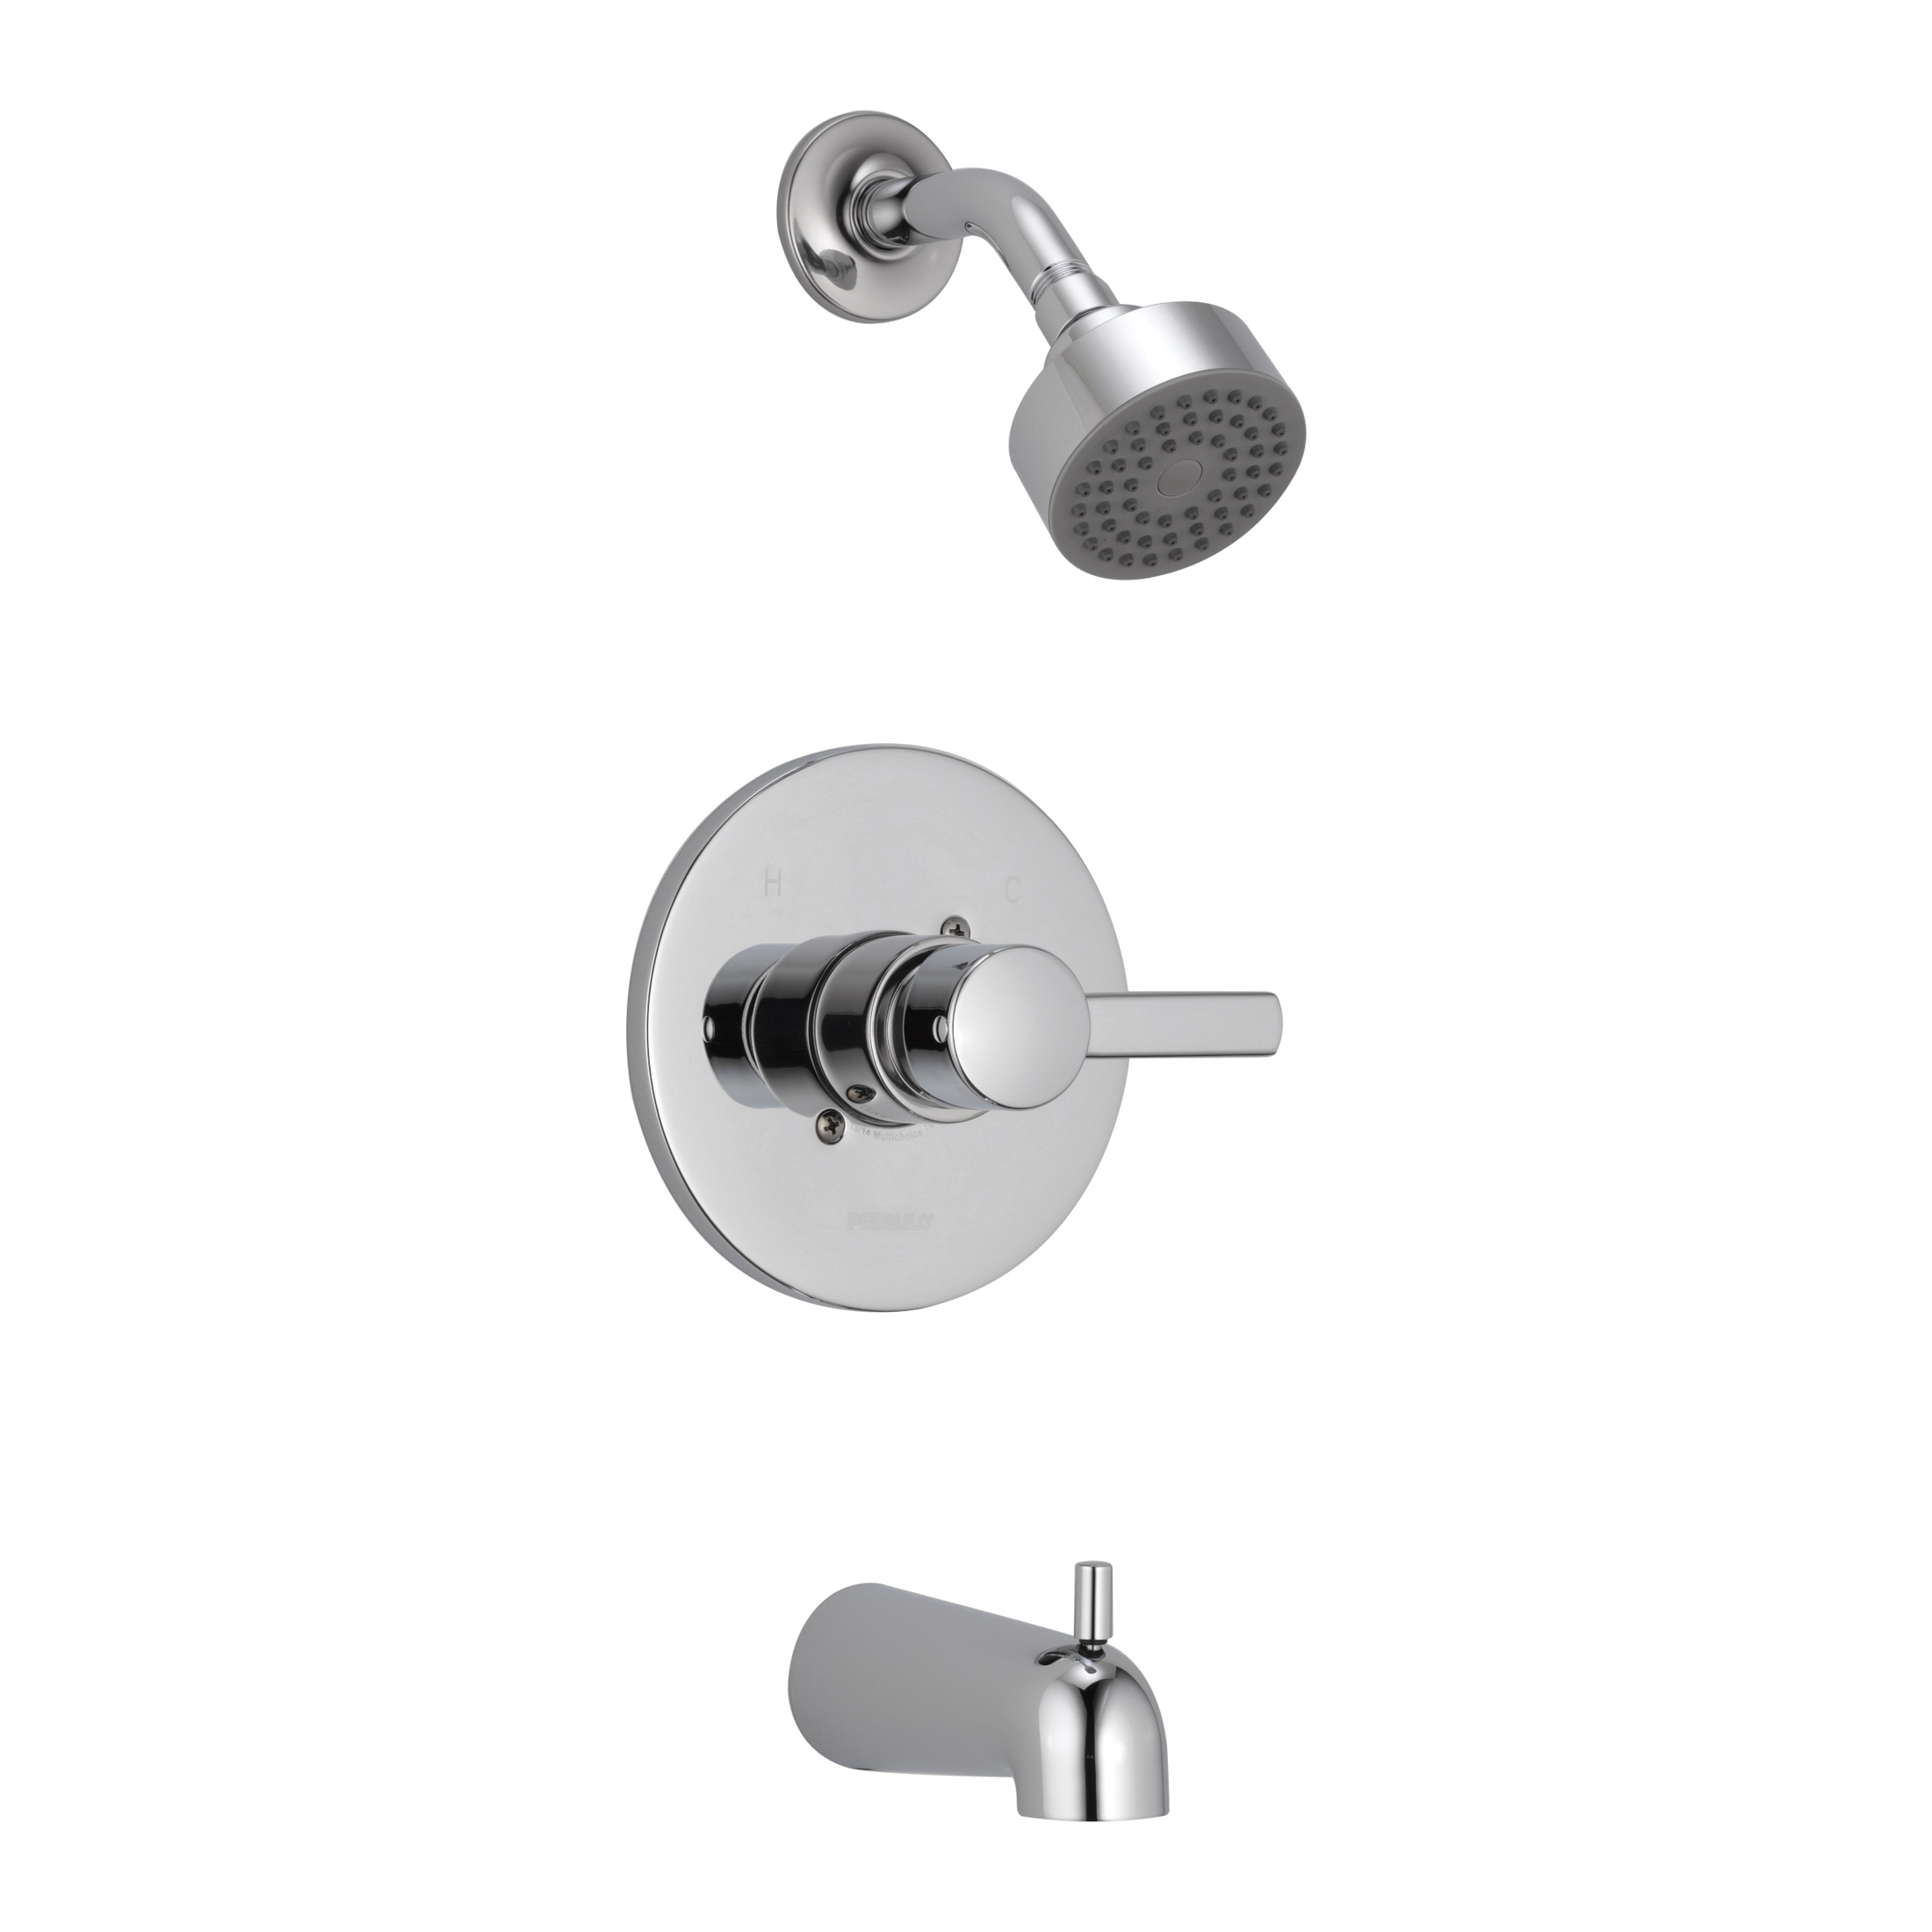 Consolidated Supply Co Peerless By Delta Ptt188792 Tub And Shower Trim Kit 1 75 Gpm Shower Hand Shower Yes No No Chrome Plated